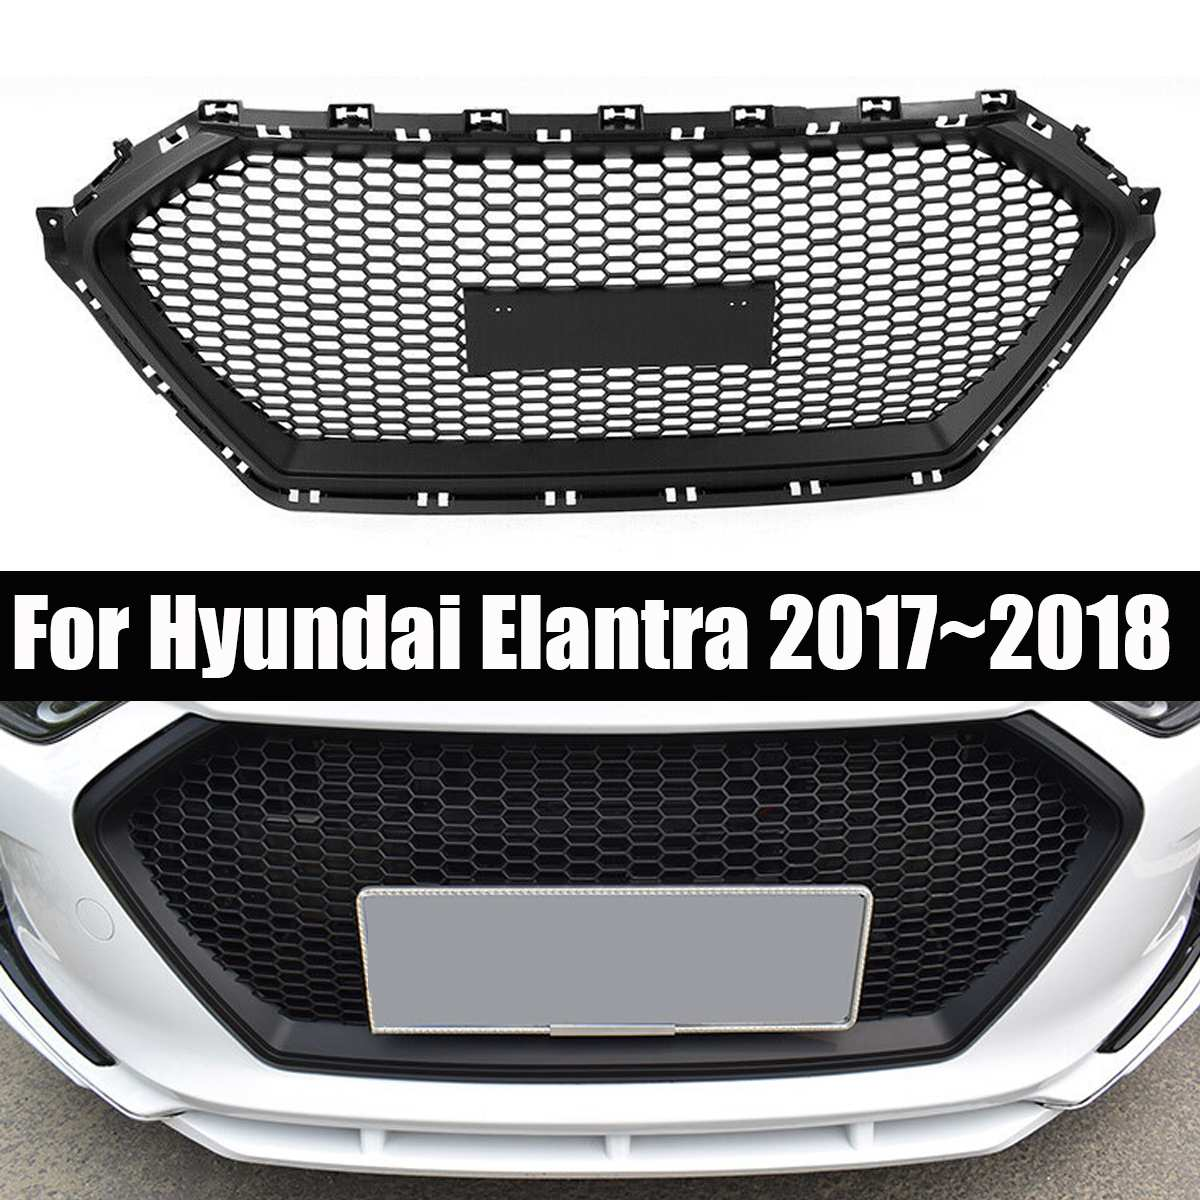 ABS Front Bumper Hood Grille Racing Grill Car Middle Grill Cover for Hyundai Elantra 2017 2018 Car Styling Exterior Parts